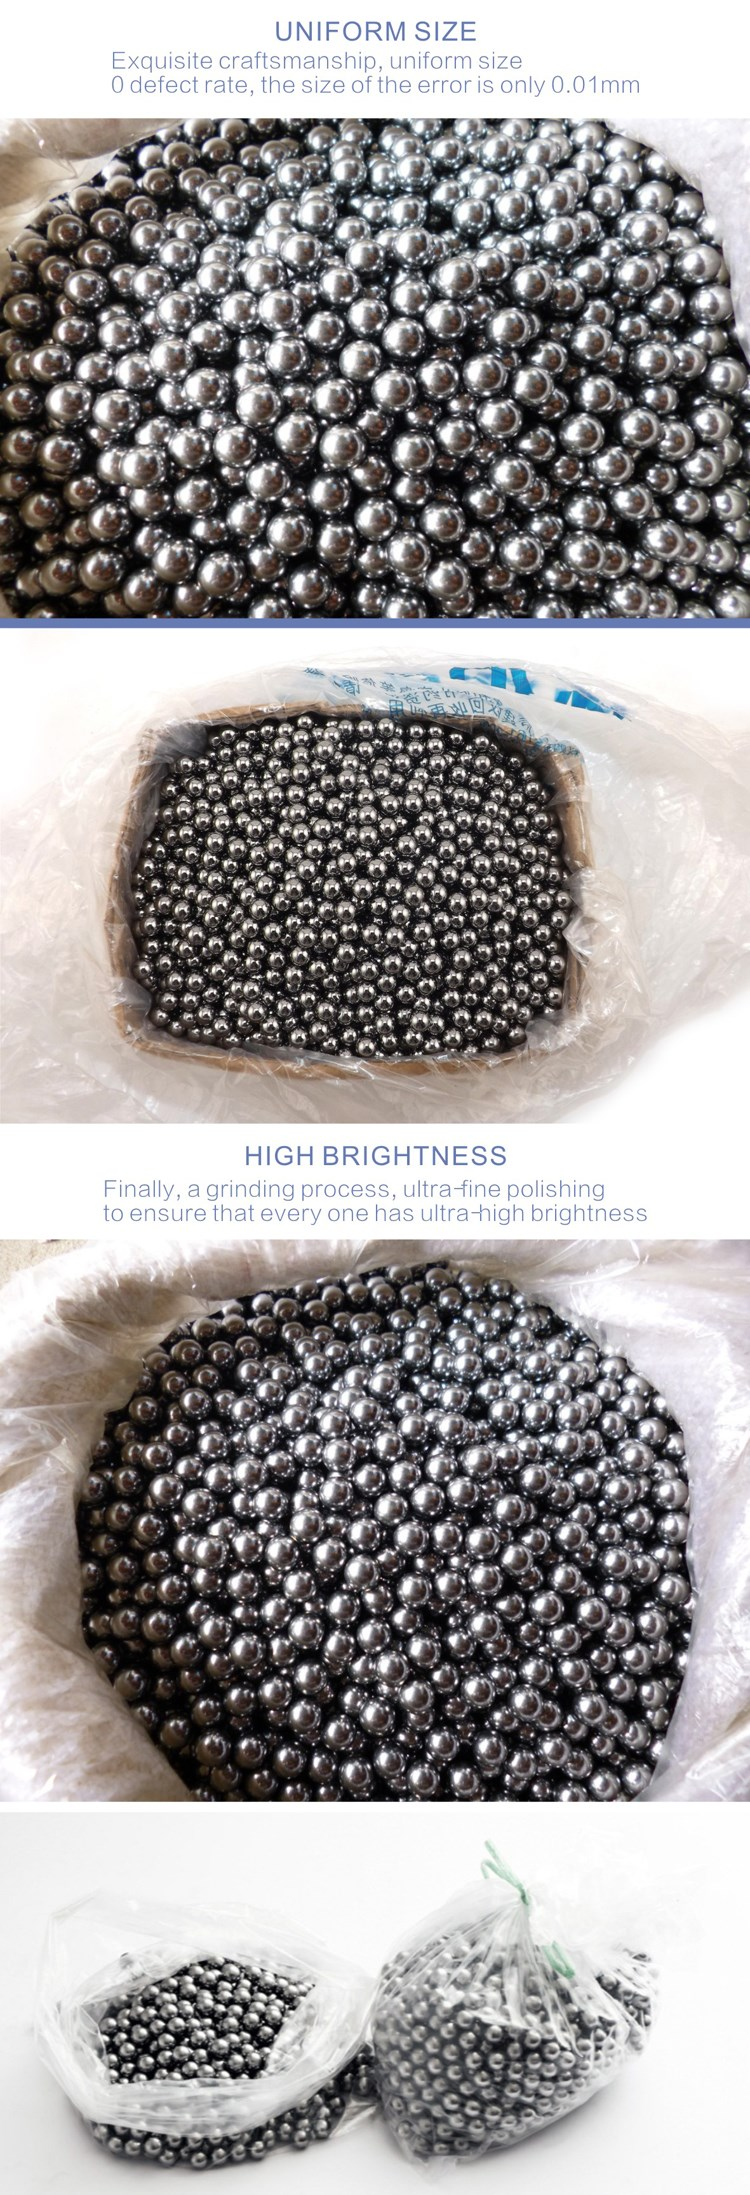 "6"" low carbon impact test steel ball for bearing. stainless / carbon / chrome steel ball, bearing steel ball"